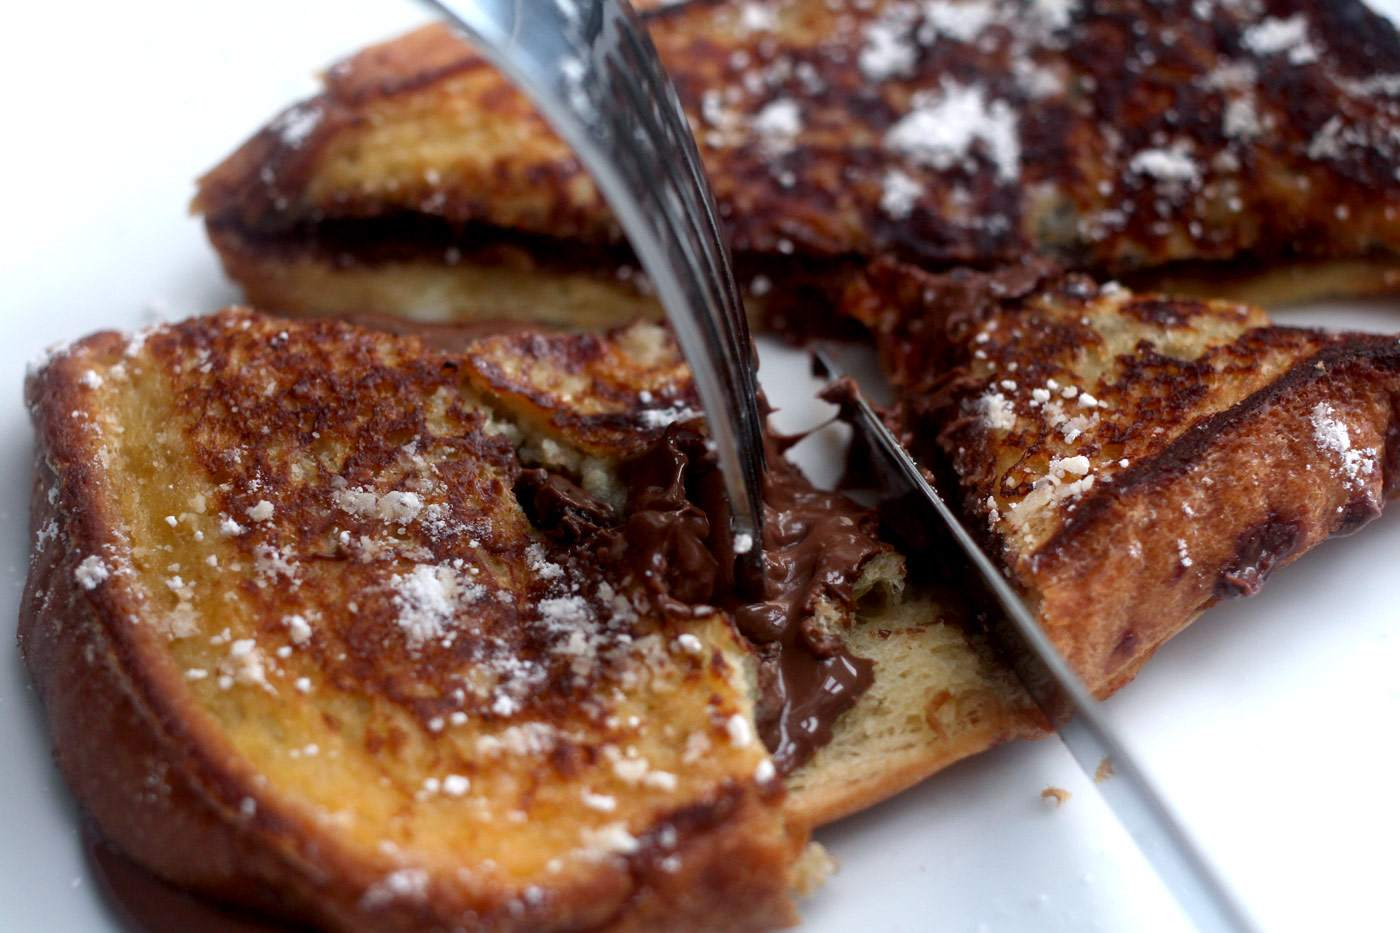 nutella-stuffed-french-toast-easy-recipe-brioche-2